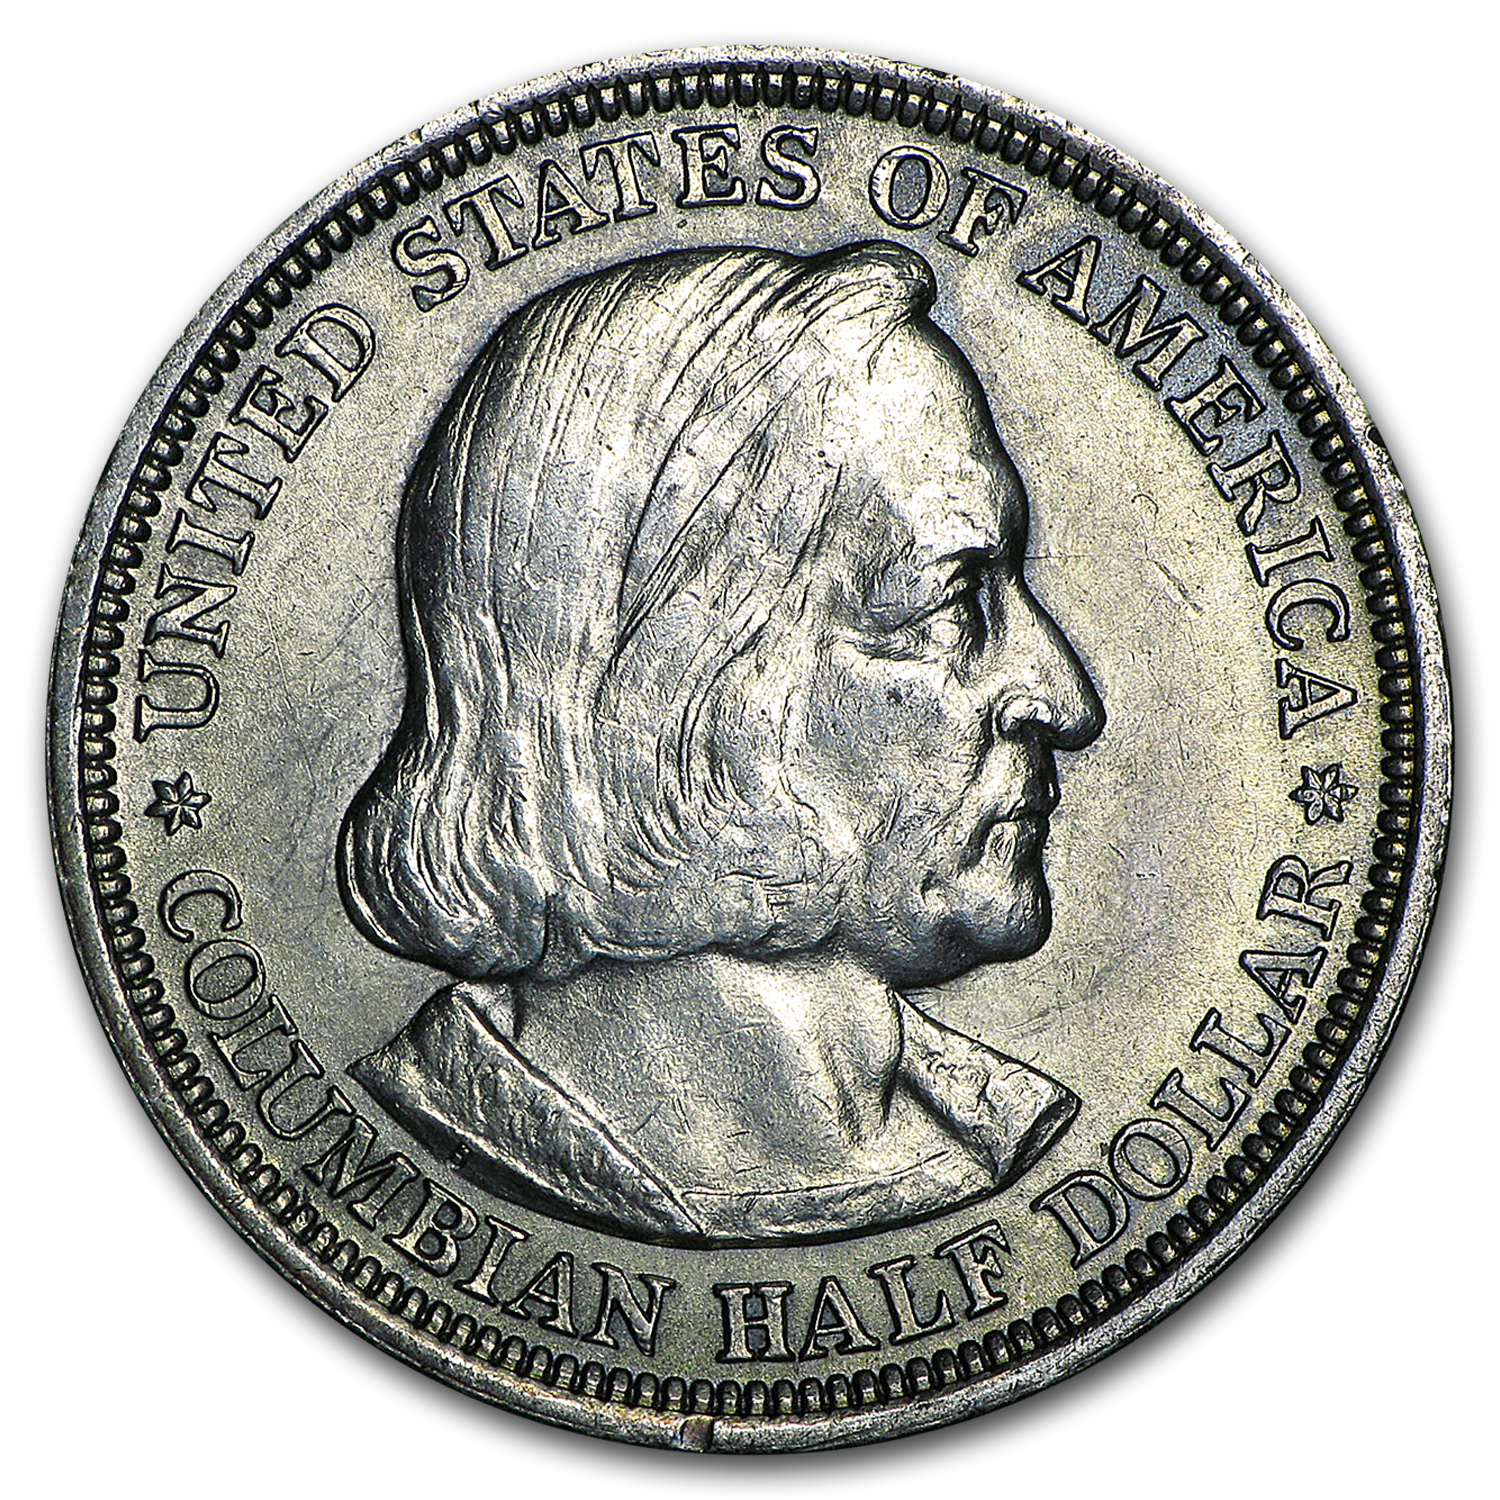 1892 or 1893 Columbian Expo Half-Dollar - Almost Uncirculated